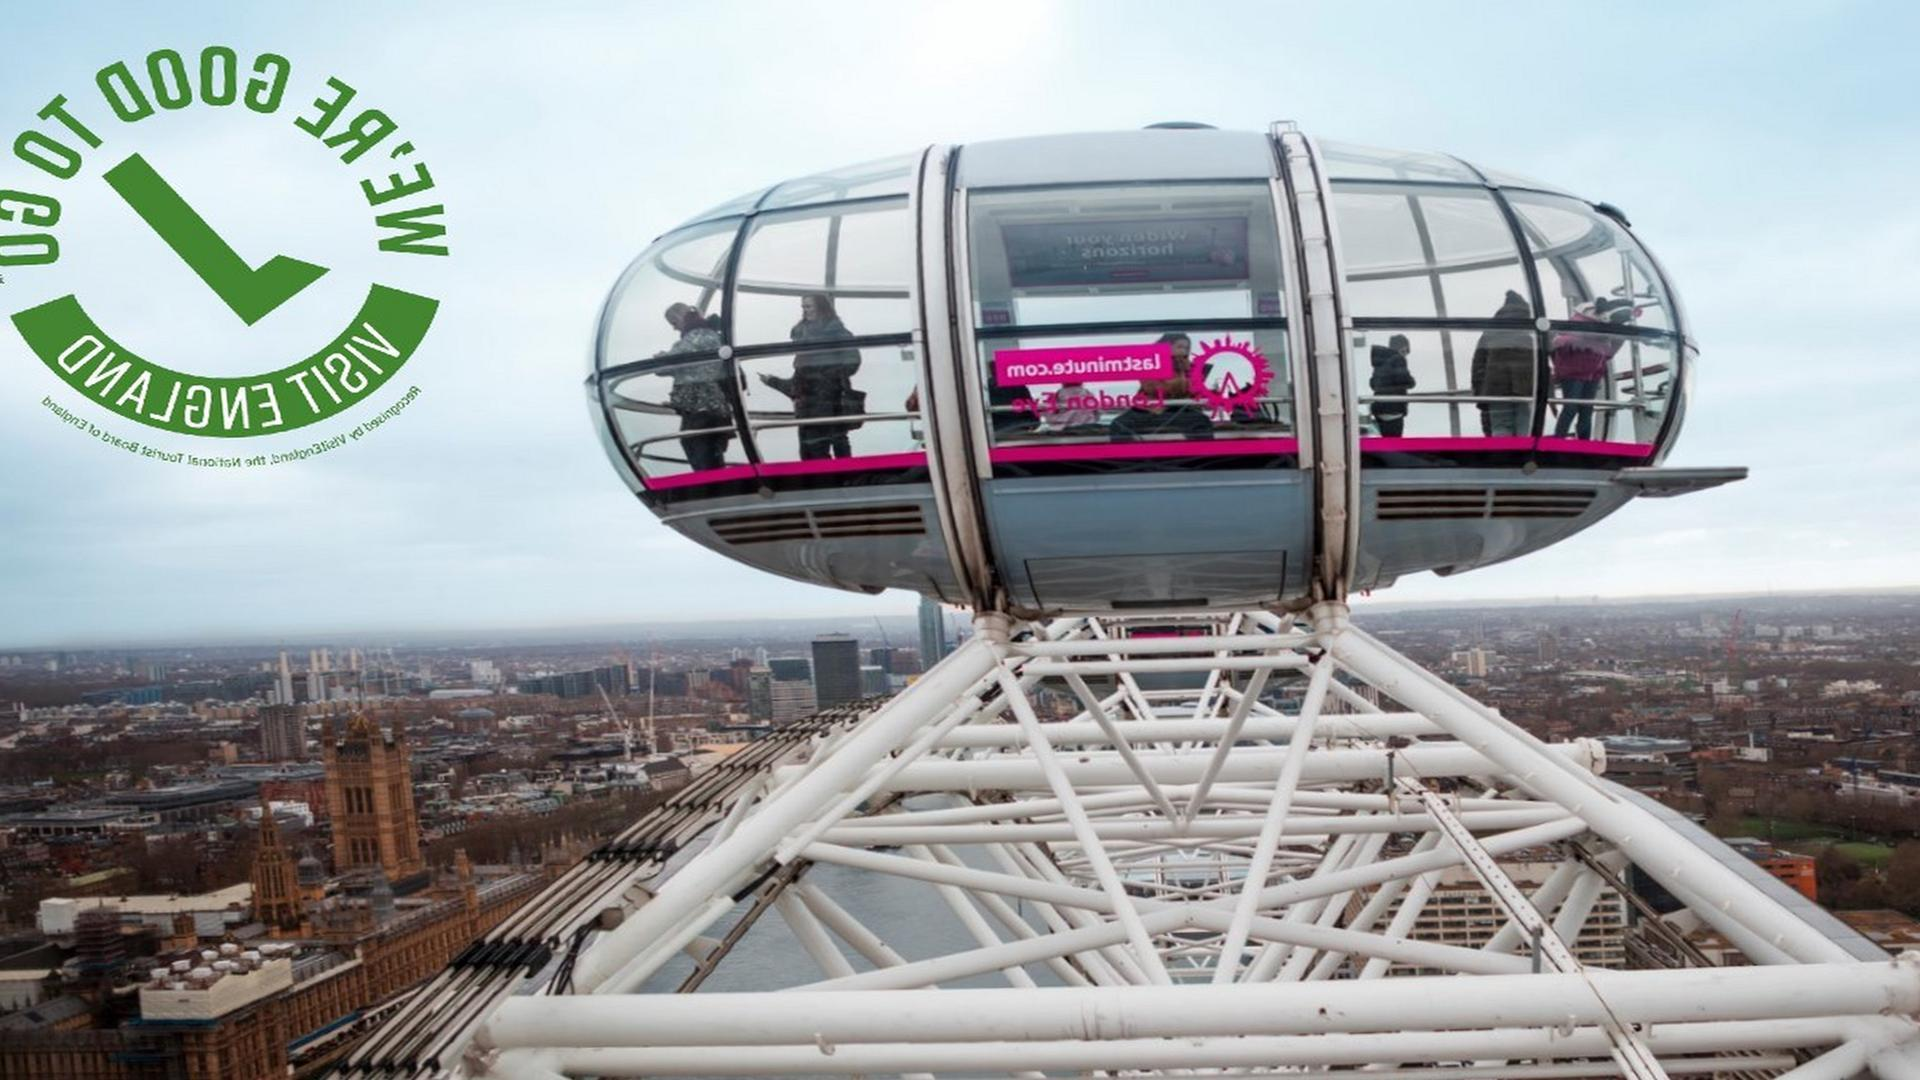 The London Eye Guide